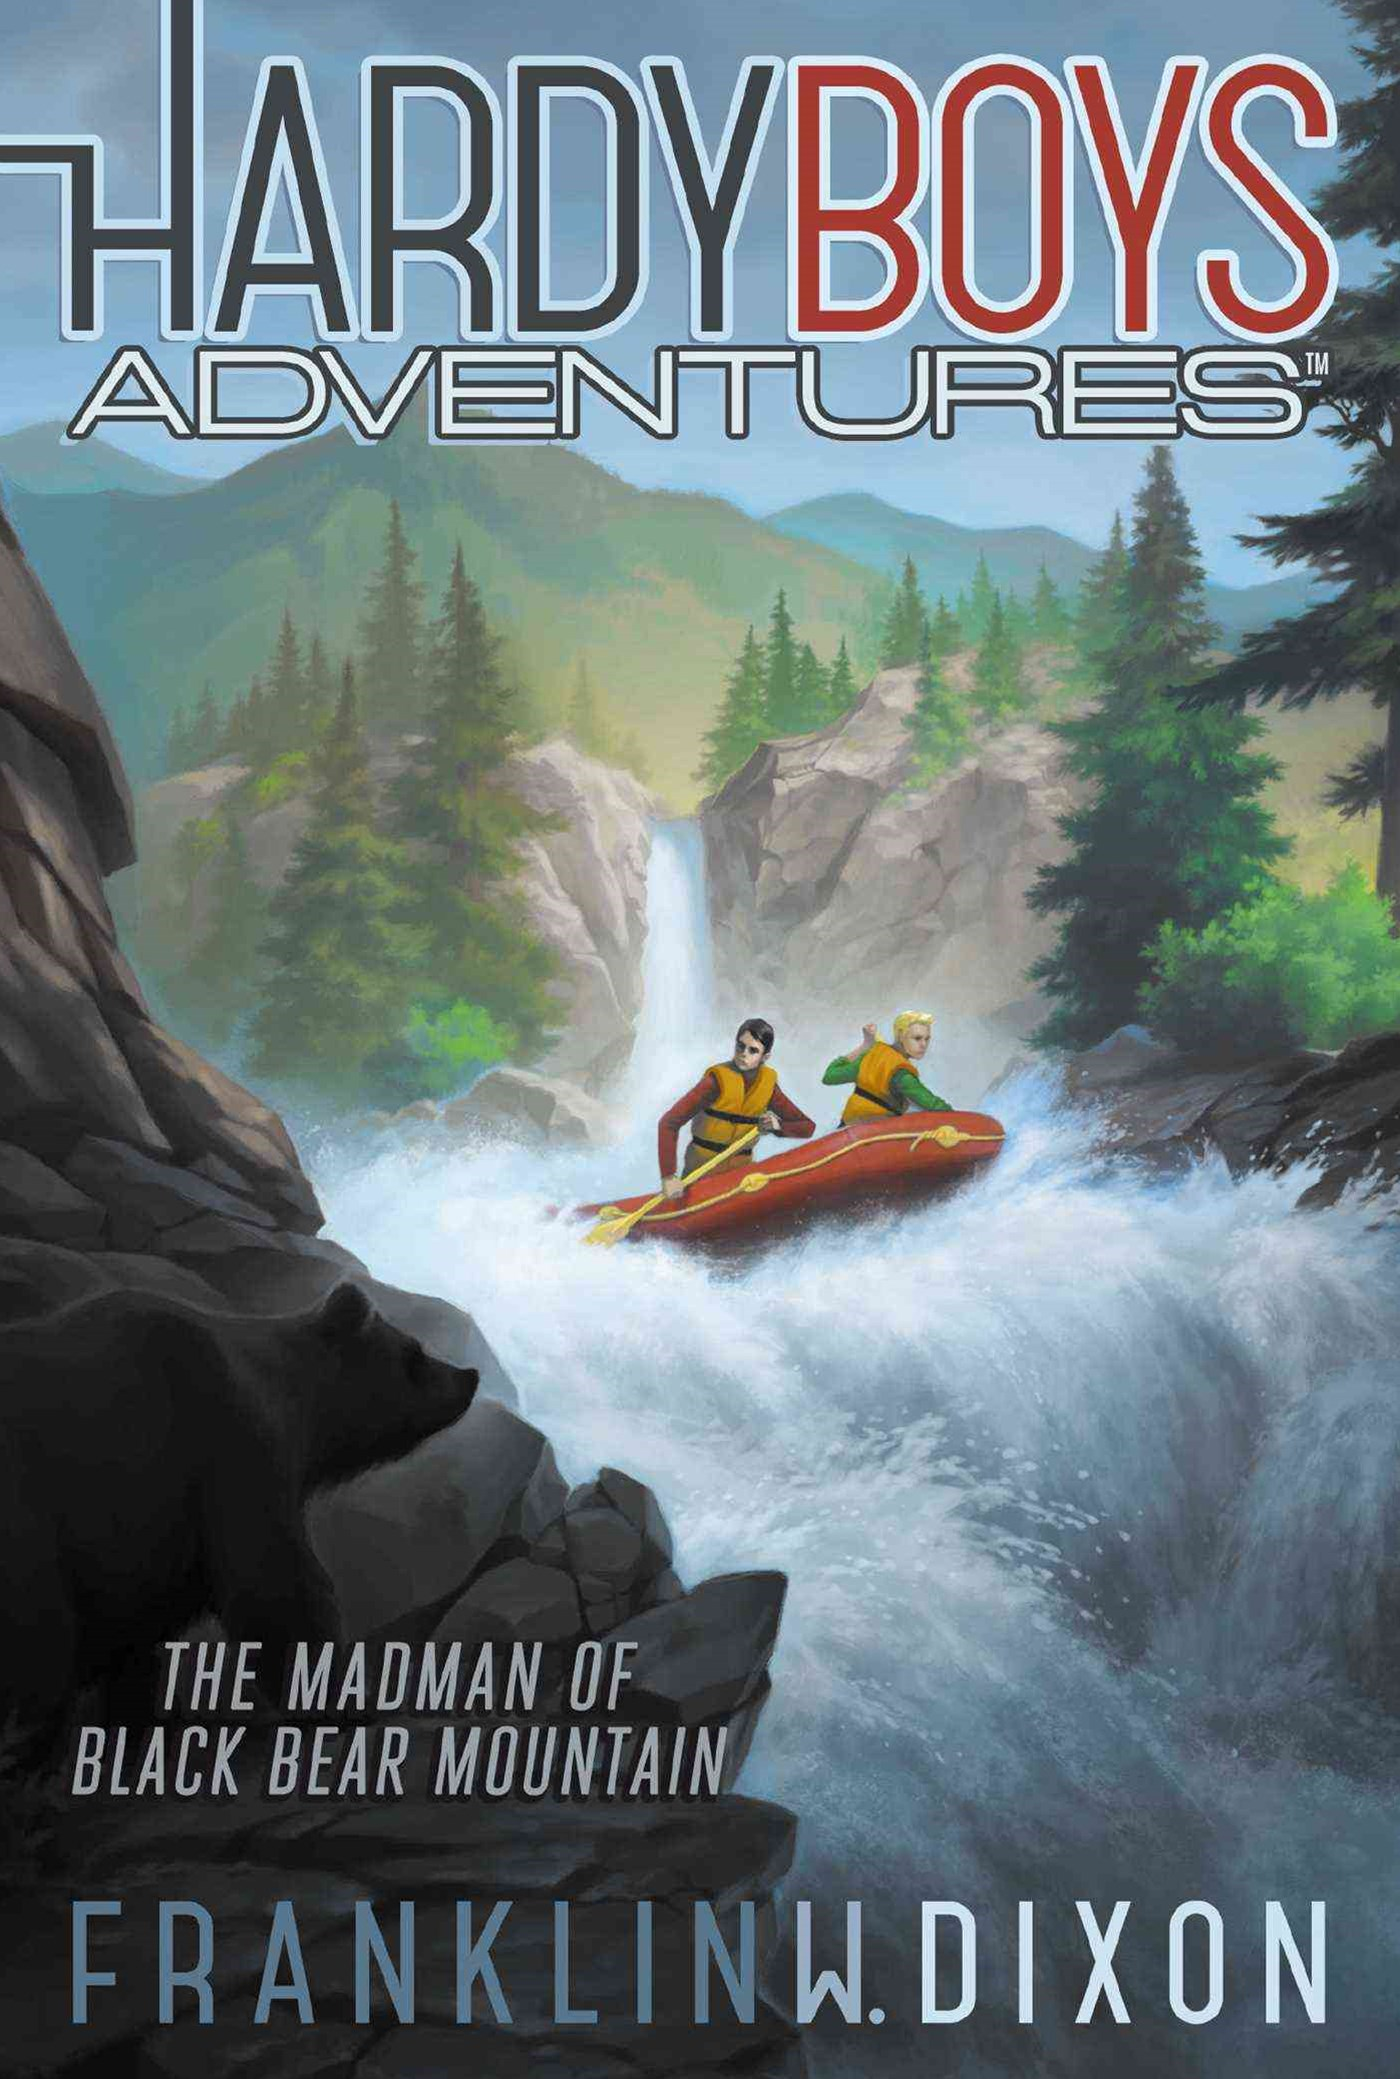 Hardy Boys Adventures #12: The Madman of Black Bear Mountain